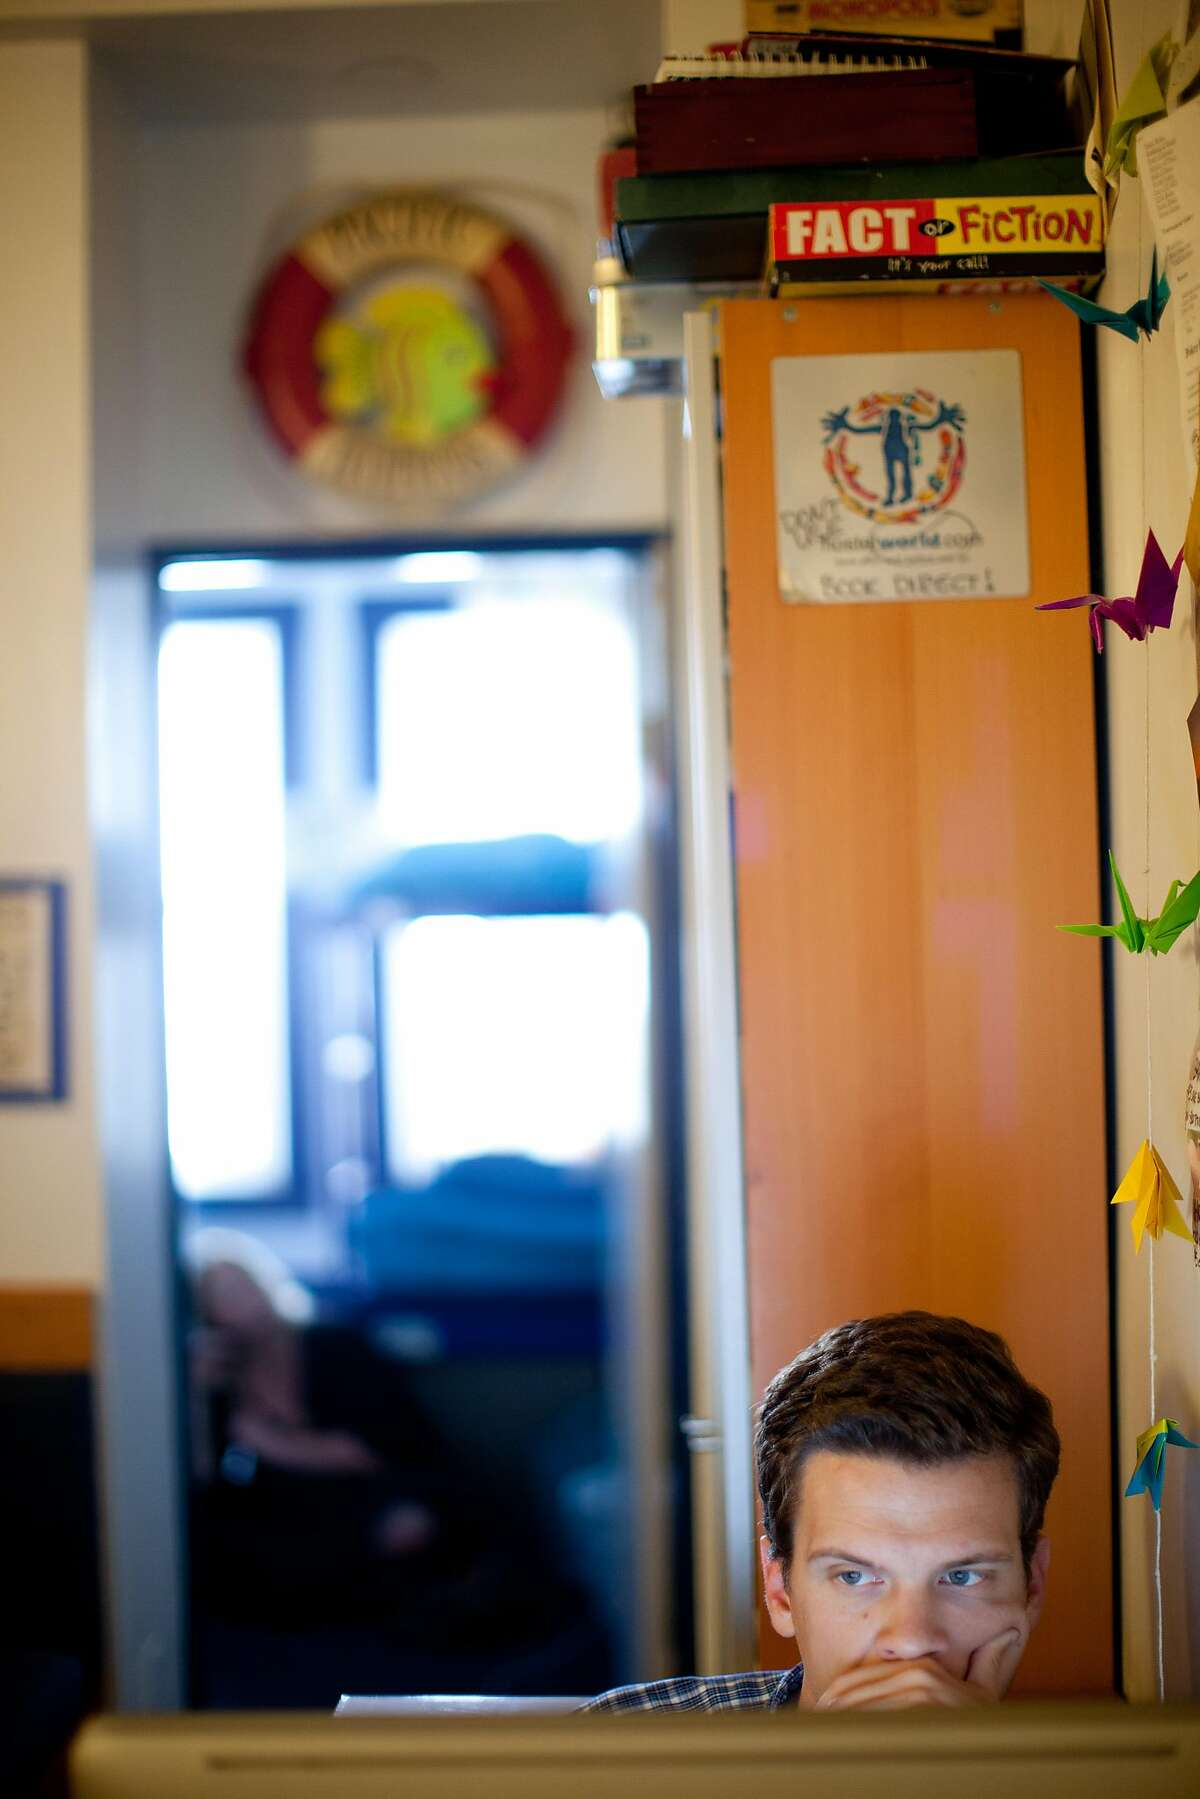 George Marshall, of Arizona, uses the internet at Pacific Tradewinds hostel in San Francisco, Calif. on Monday, June 2, 2014. Hostel owner Darren Overby noticed guests needing a place to code and collaborate so he opened RockIT CoLabs around the corner from the hostel. He lists the hostel as an International Hacker Hostel on Airbnb, offering guests the opportunity to use RockIT CoLabs as part of their stay.